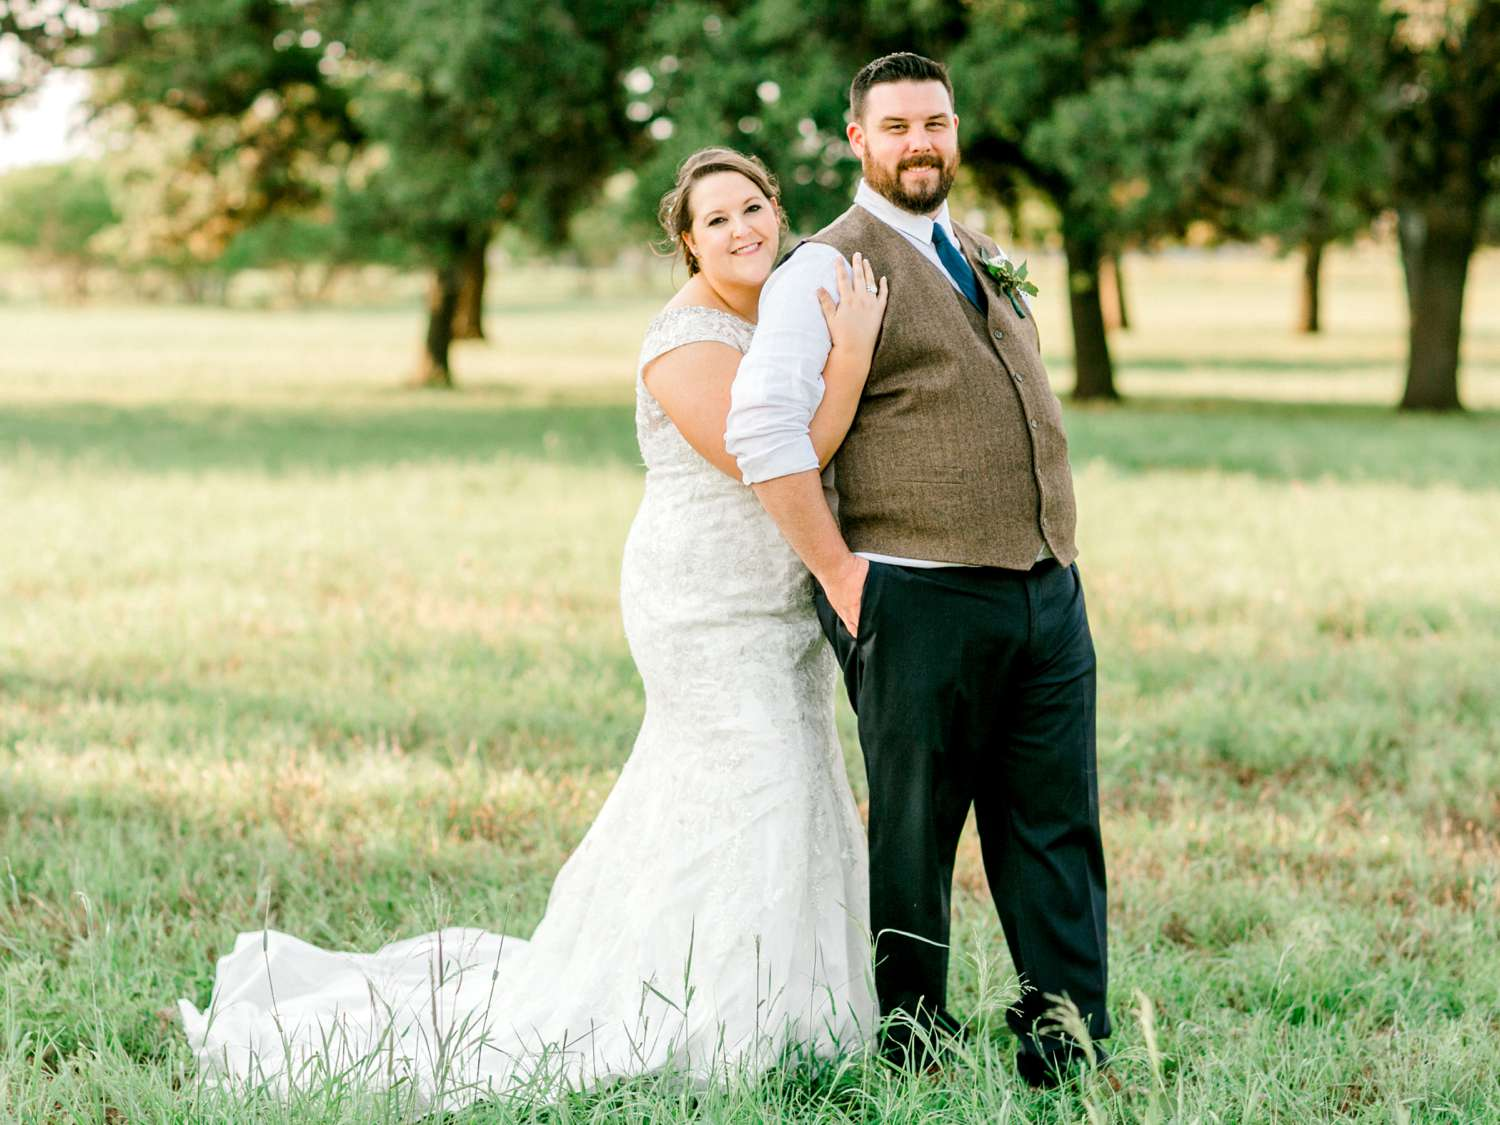 CHELSEA_AND_NICK_ADAMS_FREDRICKSBURG_WEDDING_ALLEEJ0114.jpg